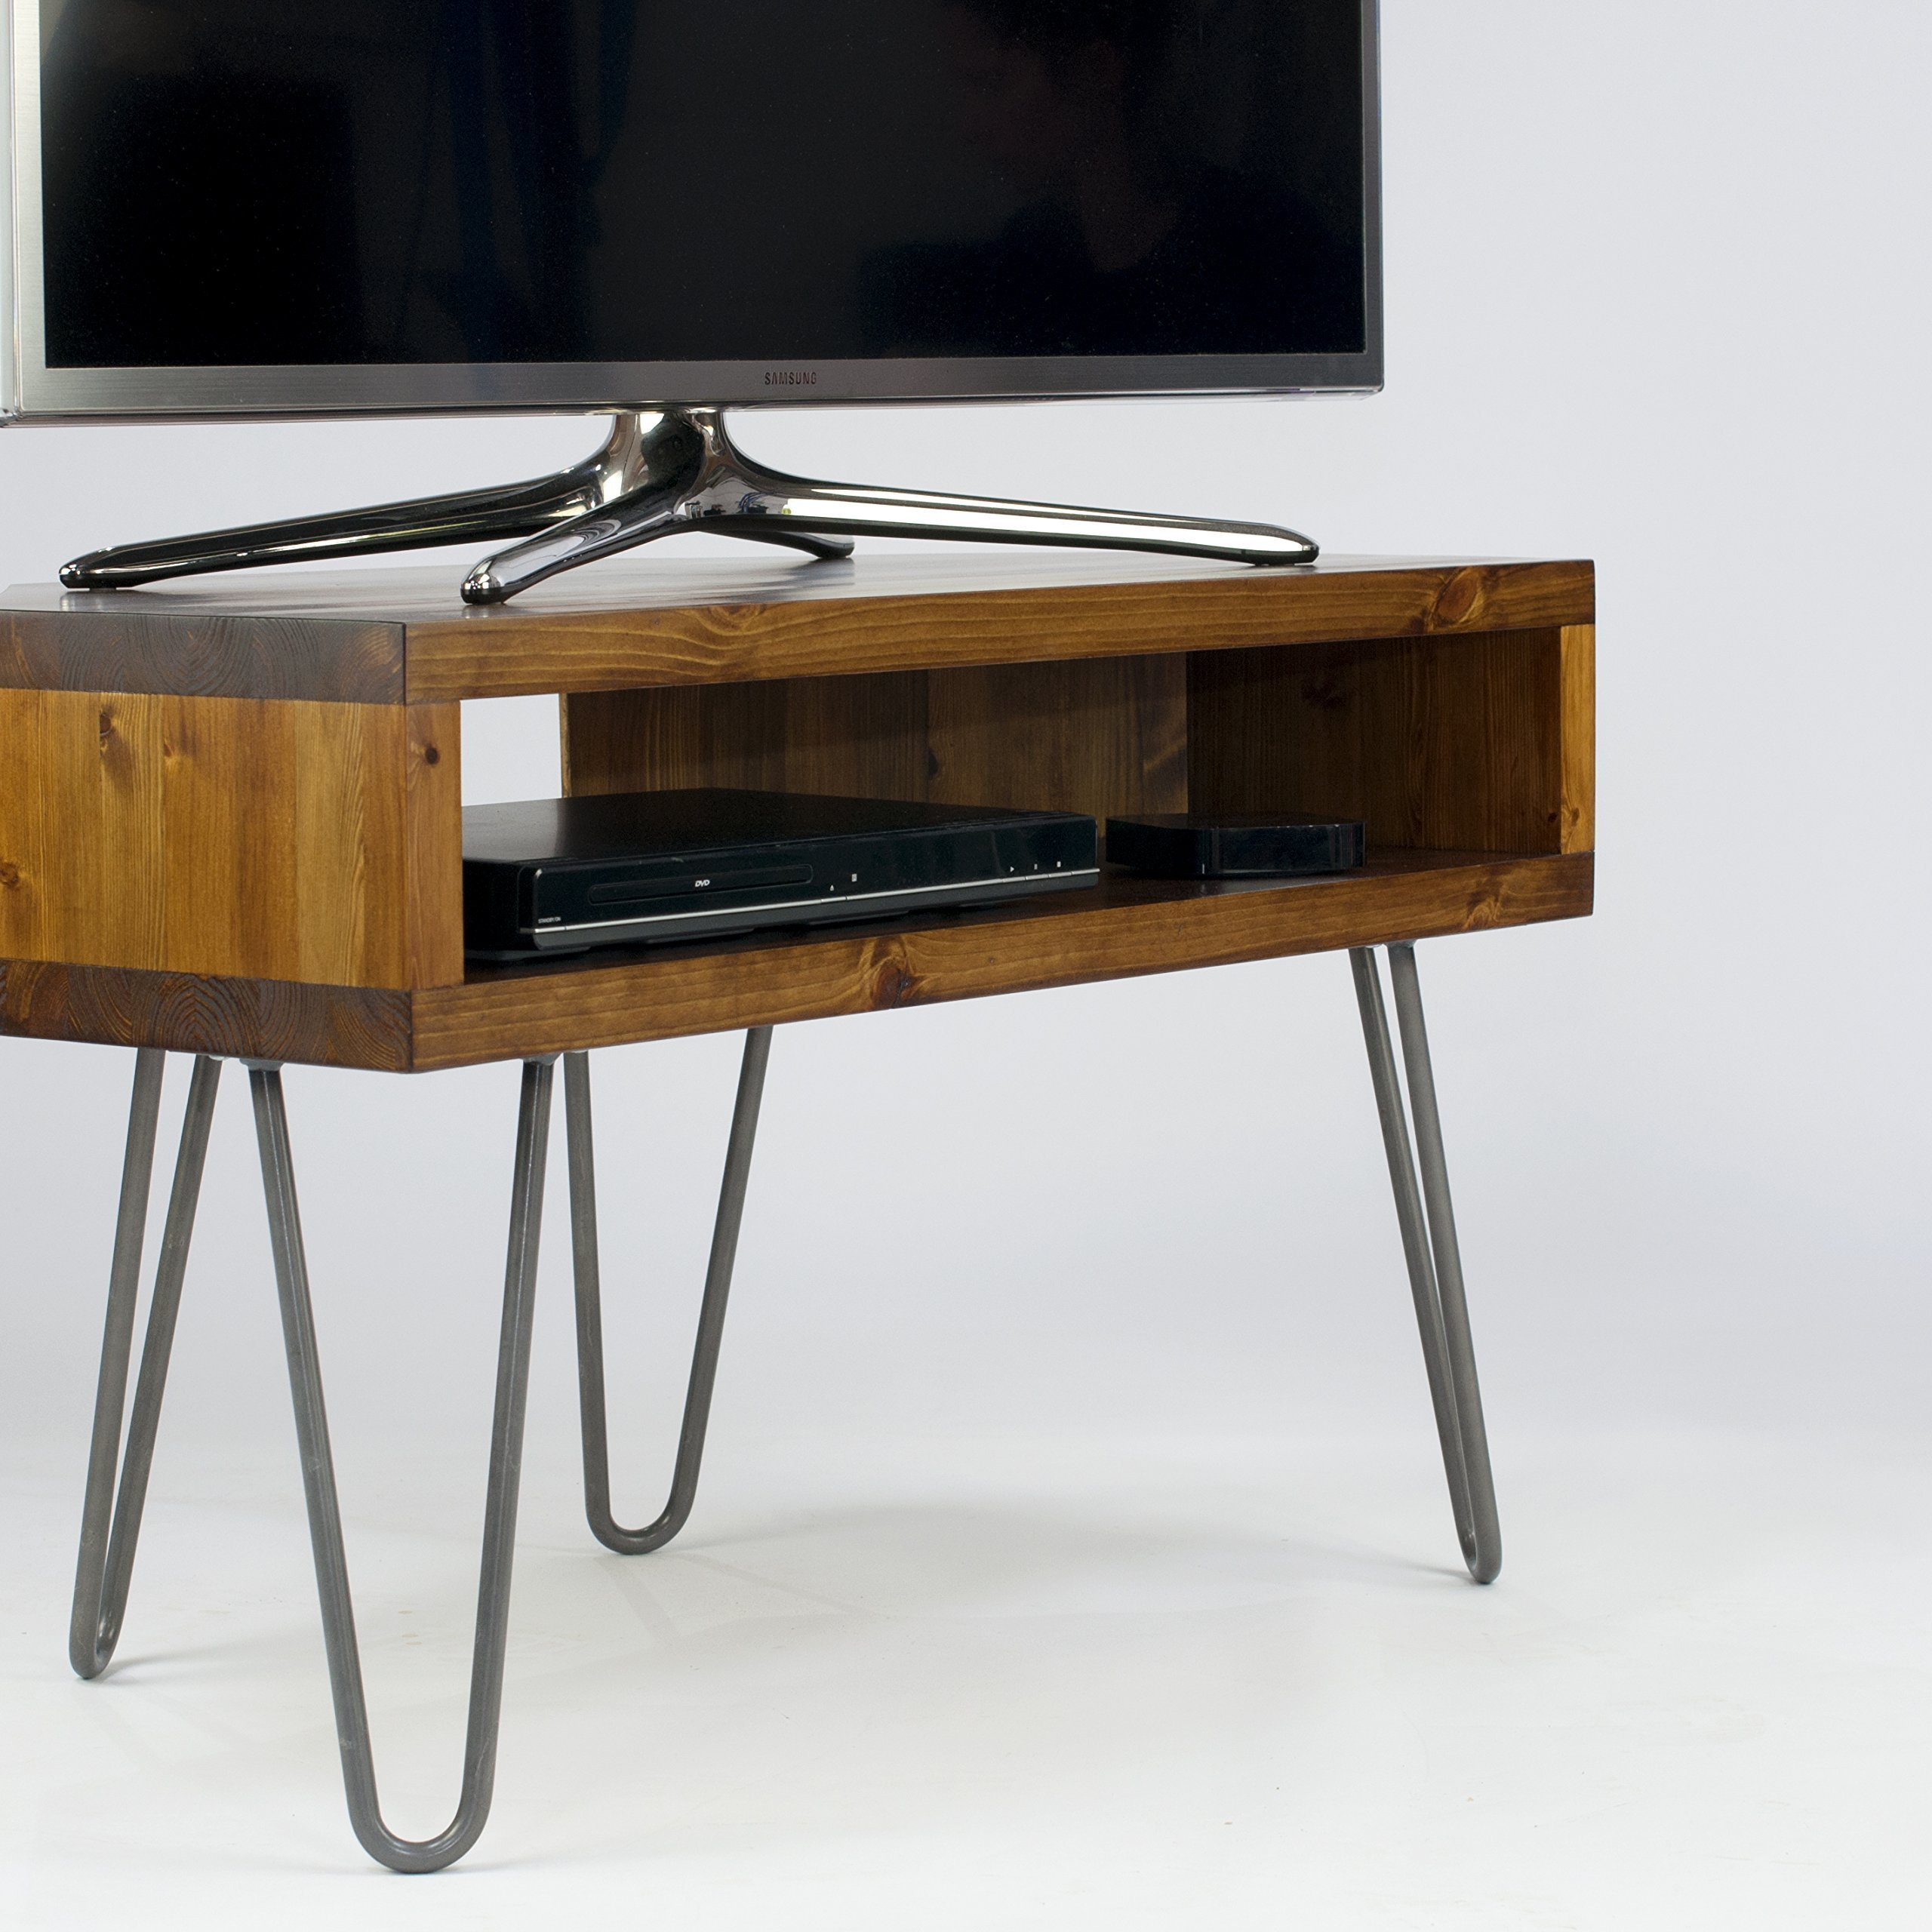 Vintage Retro Corner Corner Tv Stand Wmetal Hairpin Legs Solid Wood Rustic Unit Table